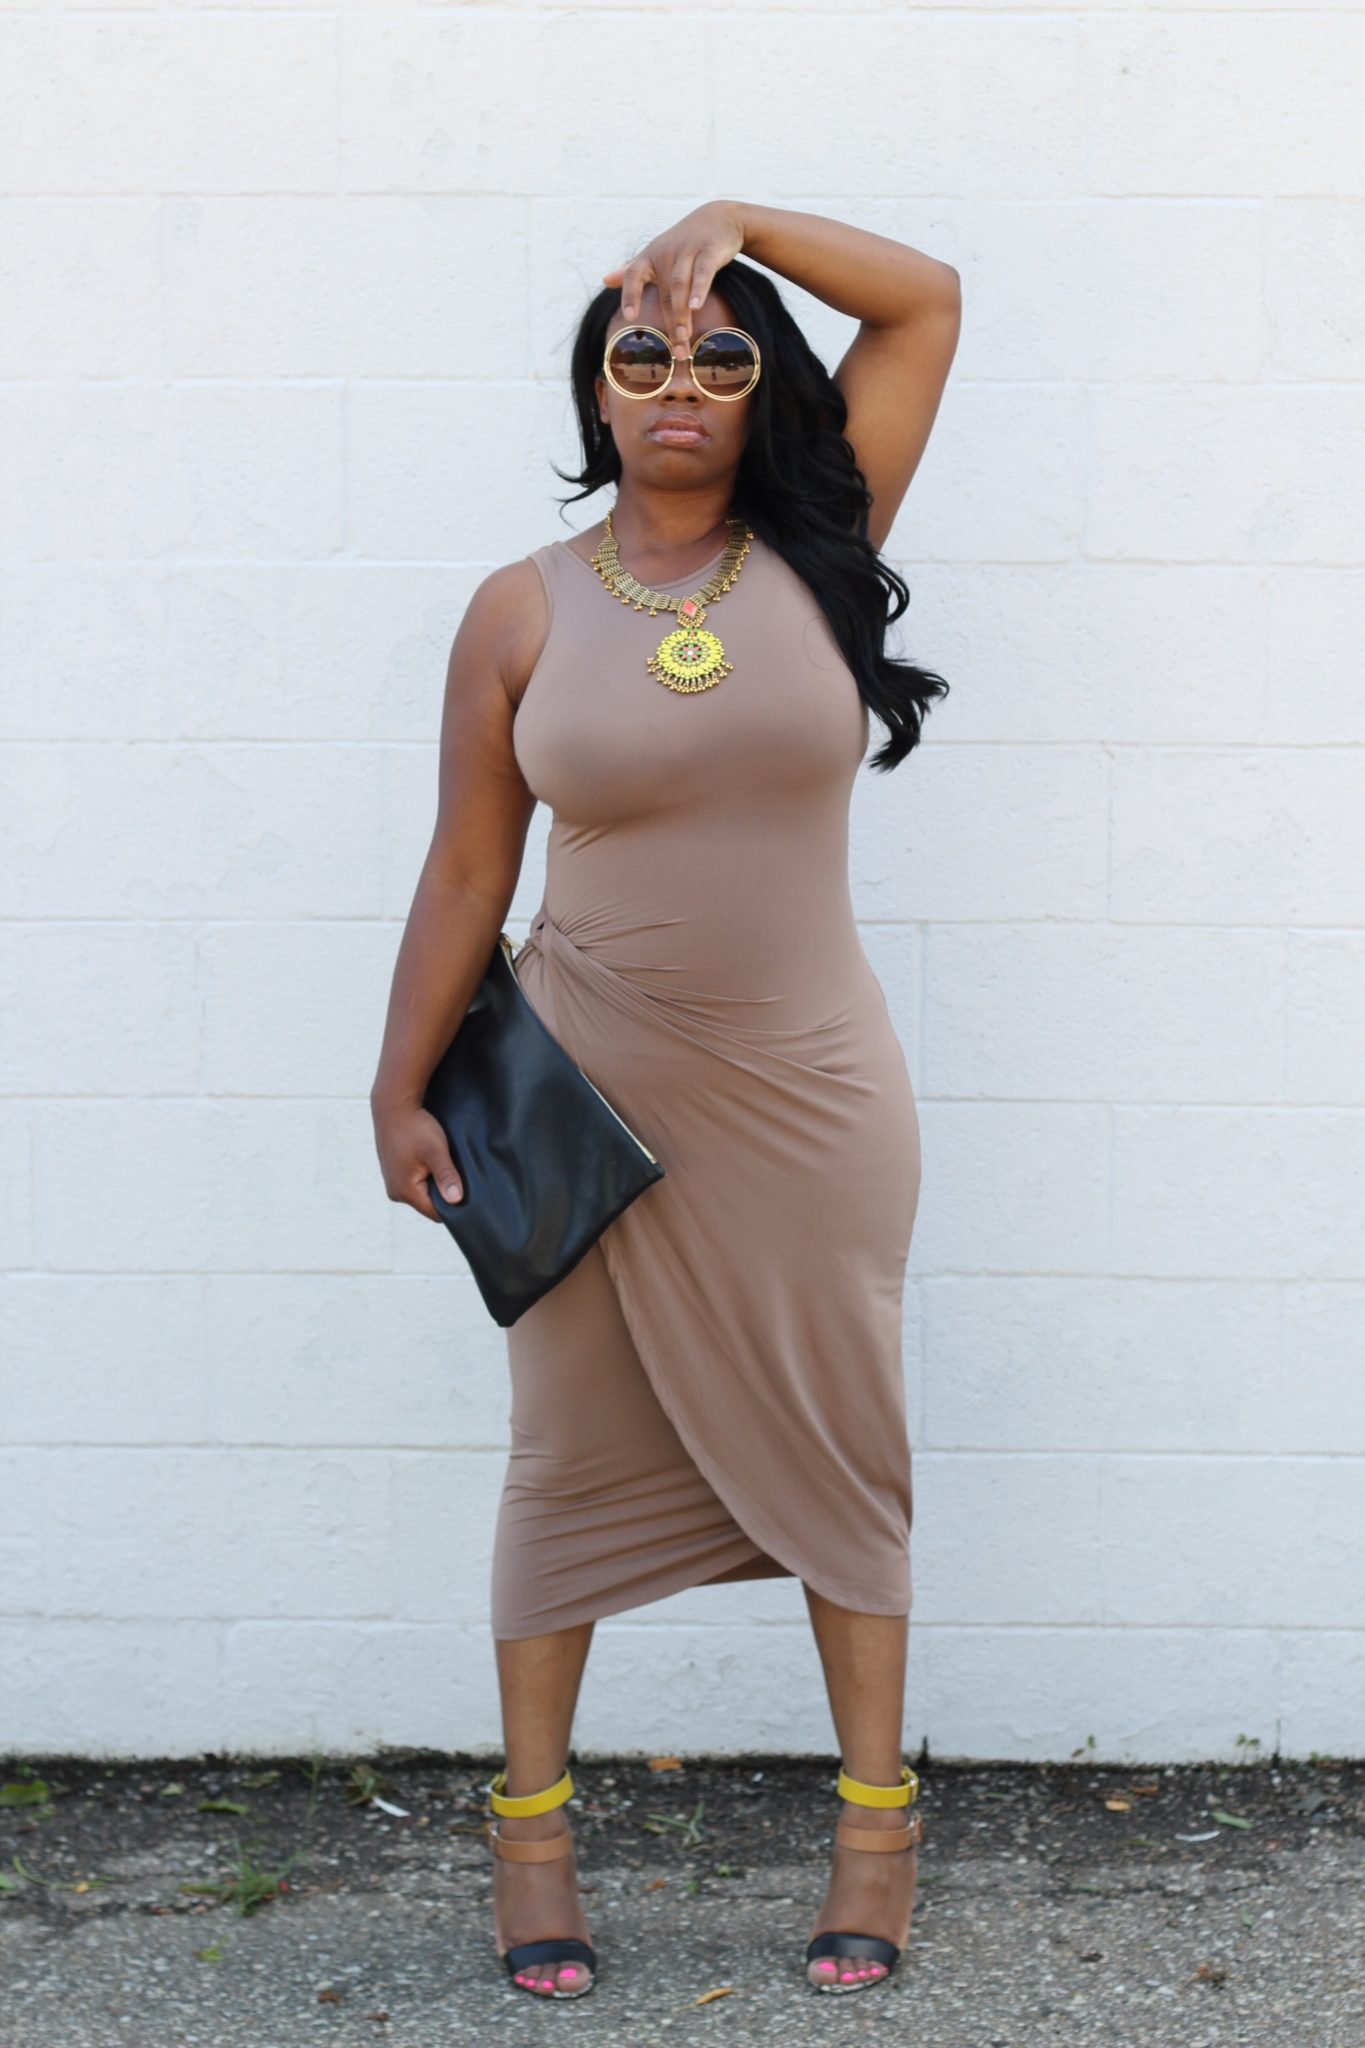 """publish_snapshot-4-2 """"Hot As July""""American Apparel eBay Fashion how to Justfab OOTD Style How To's: Style Inspiration Stylewatch Styling Uncategorized"""